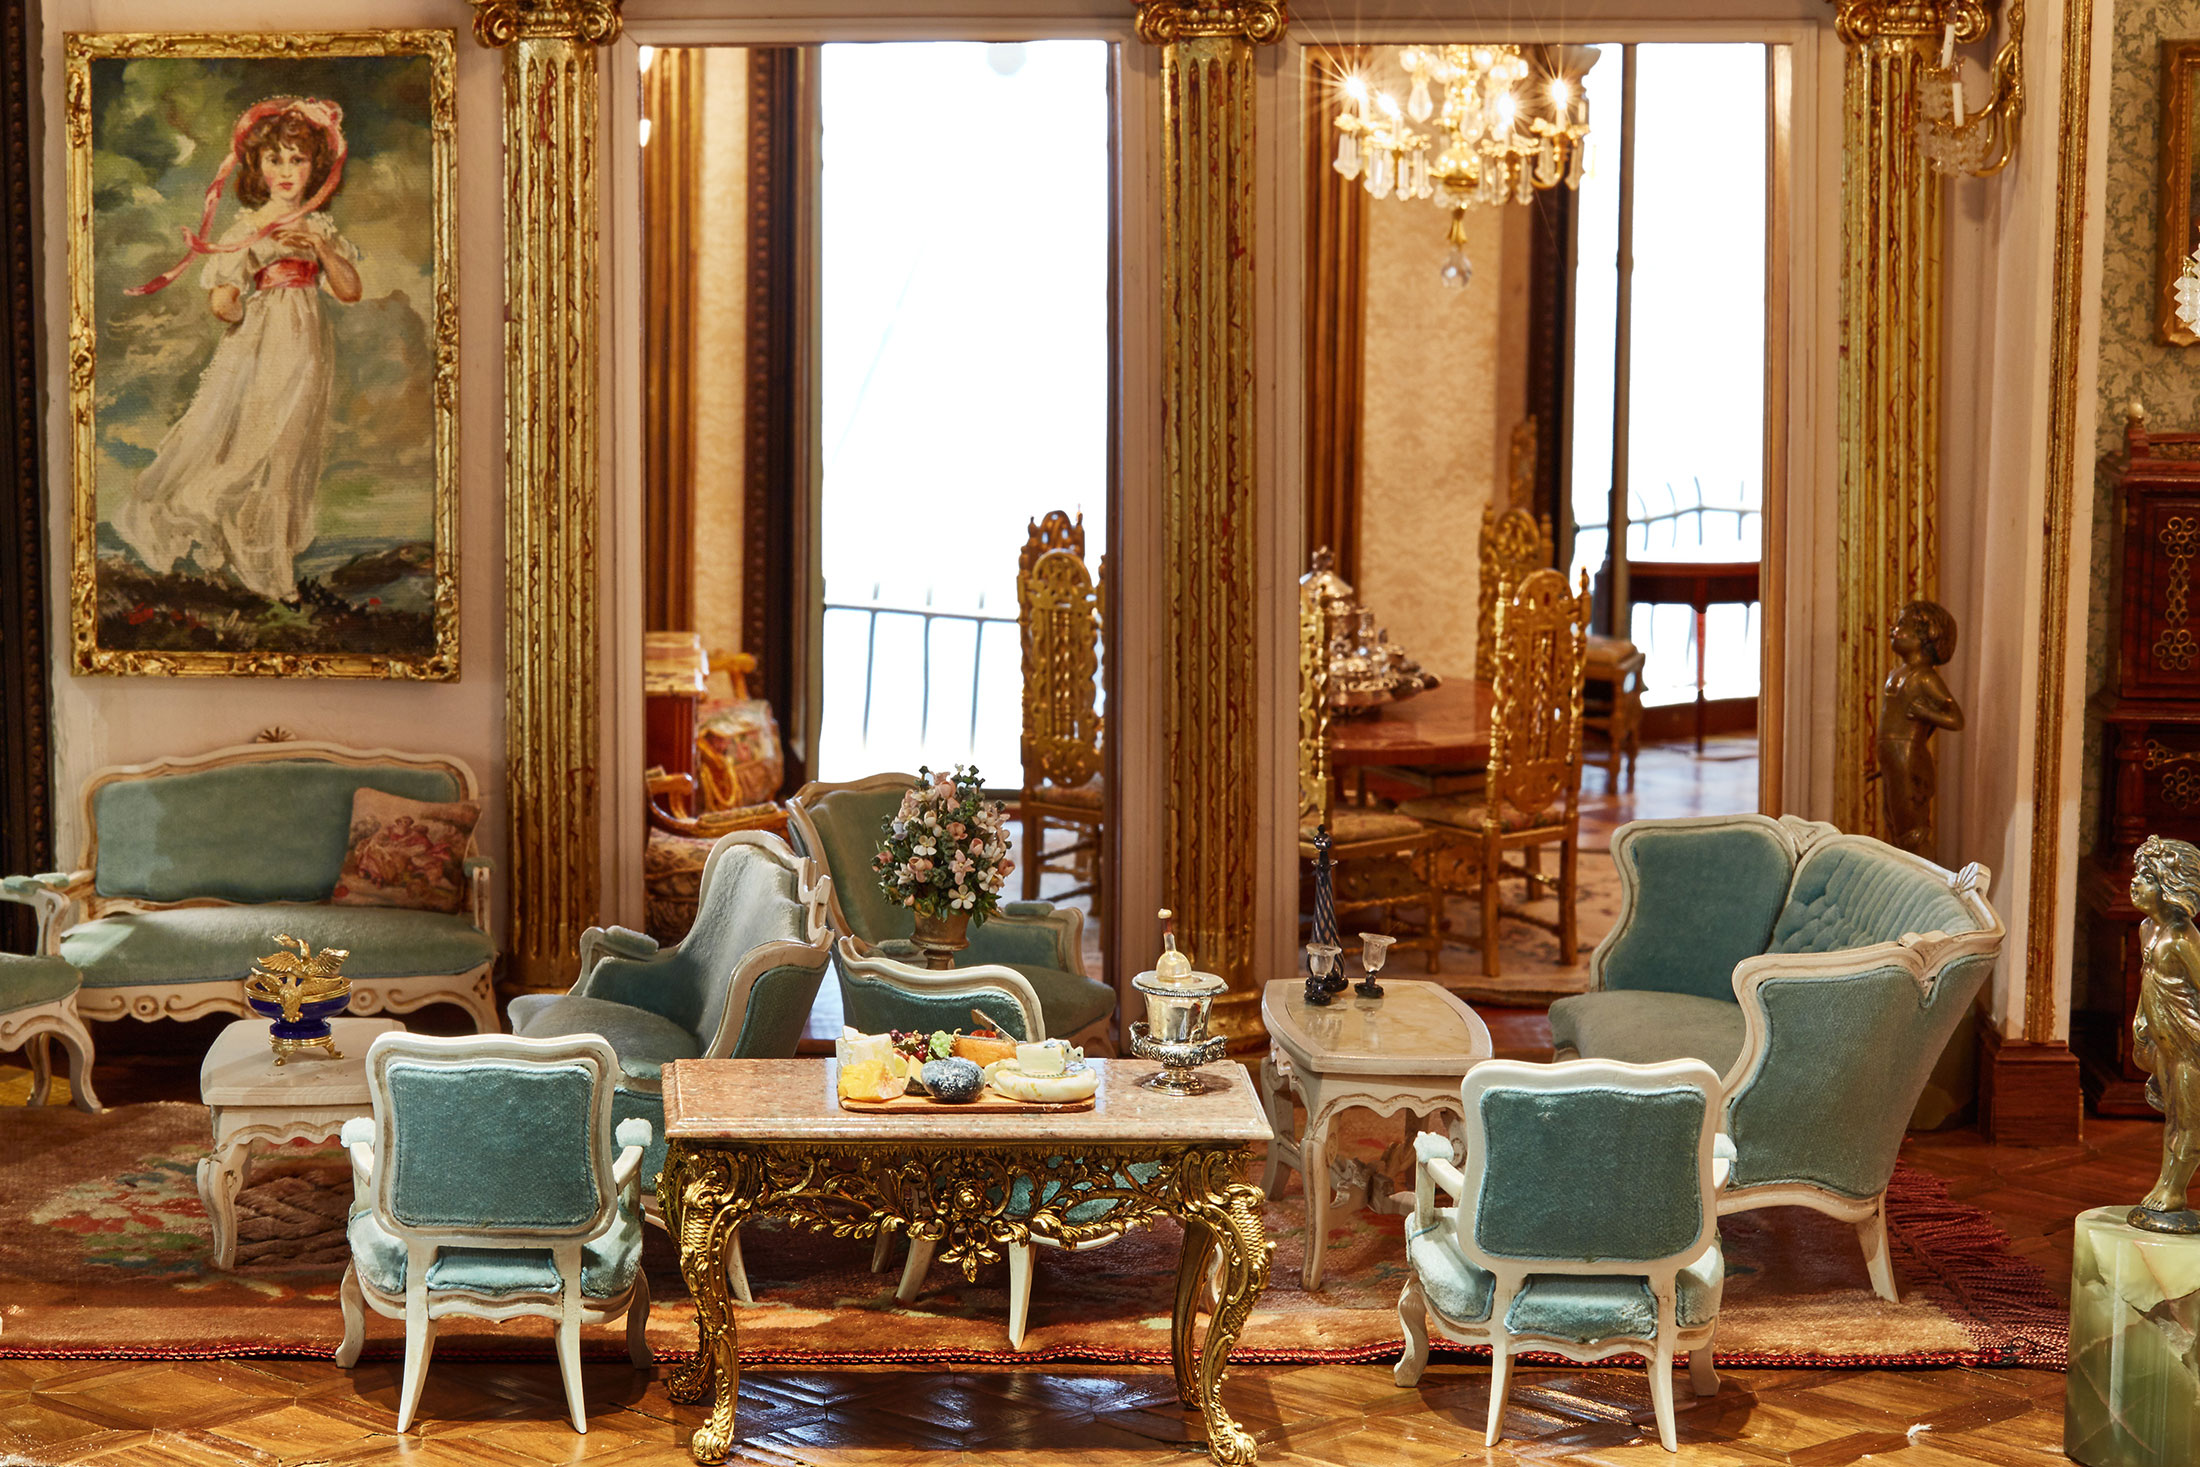 This Dollhouse Costs $8.5 Million. Let's Take a Tour